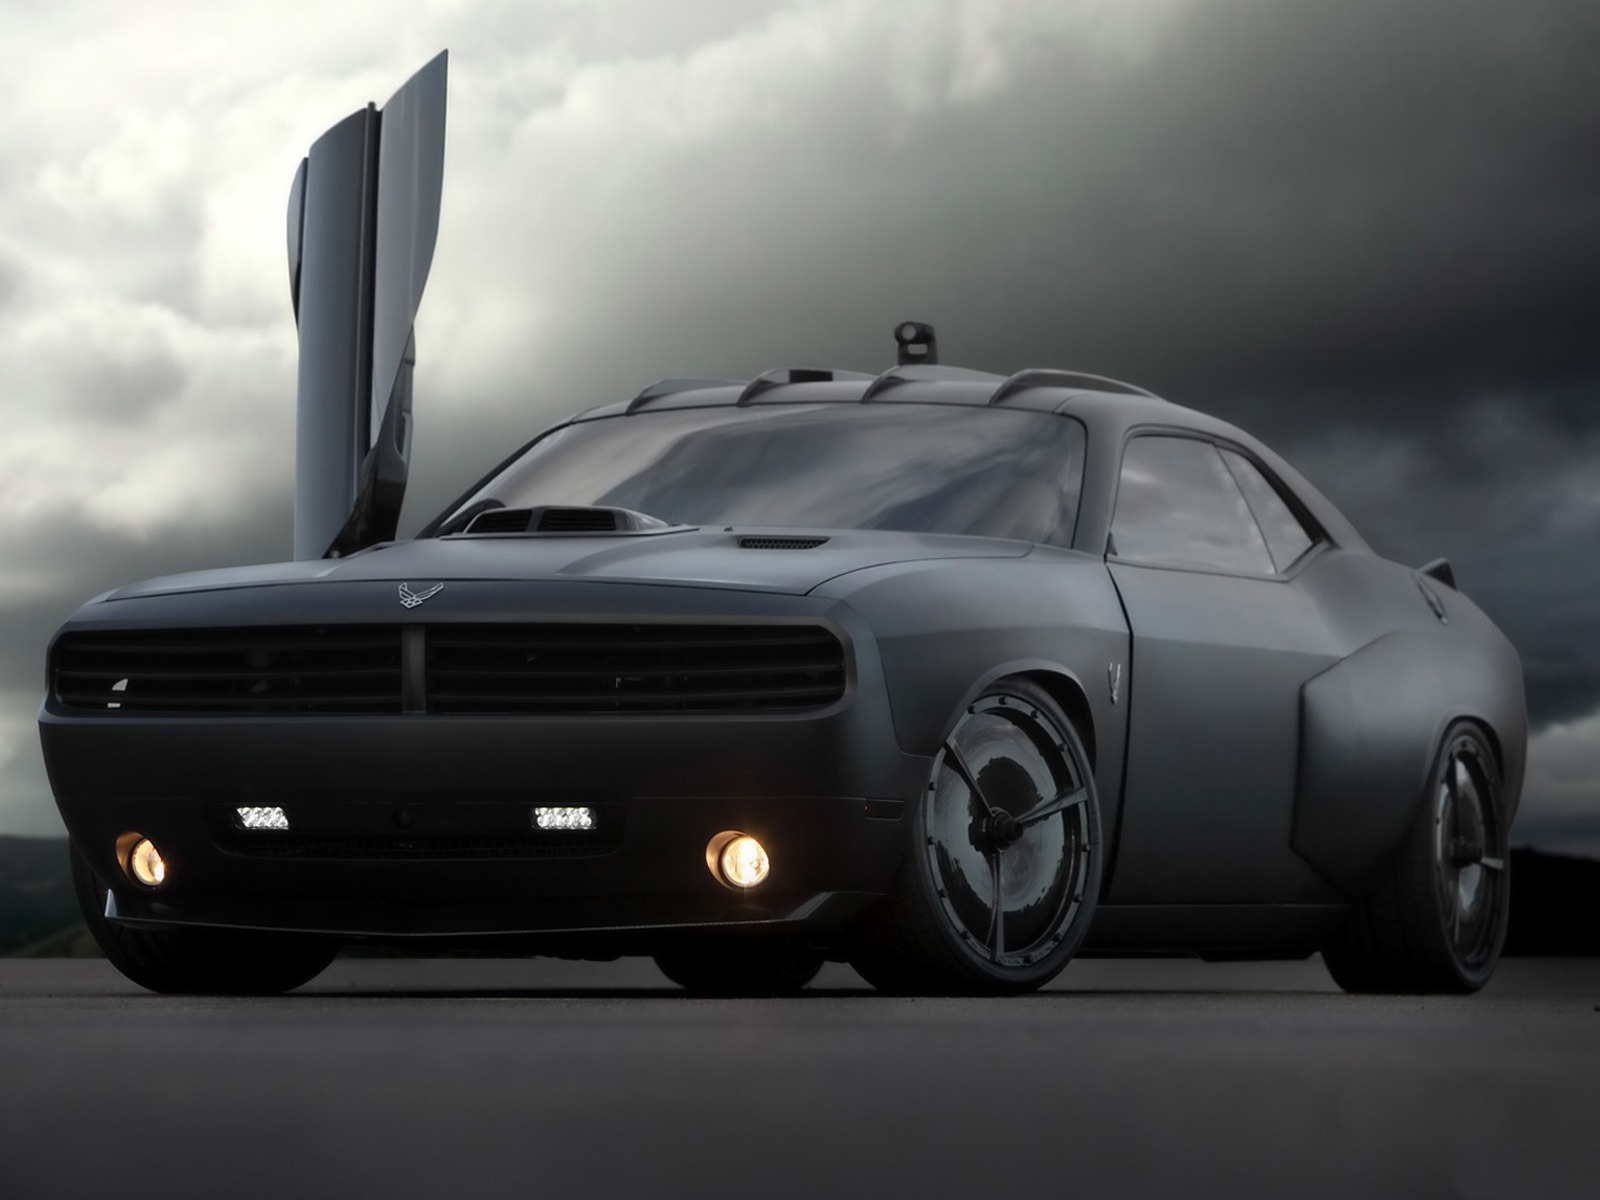 https://3.bp.blogspot.com/-ZTyhJyQZh2s/UPh-a2lmFjI/AAAAAAAAPM8/DuEZ6Dwzcqc/s1600/dodge_challenger_vapor_wallpaper_dodge_cars_wallpaper_1600_1200_2215.jpg